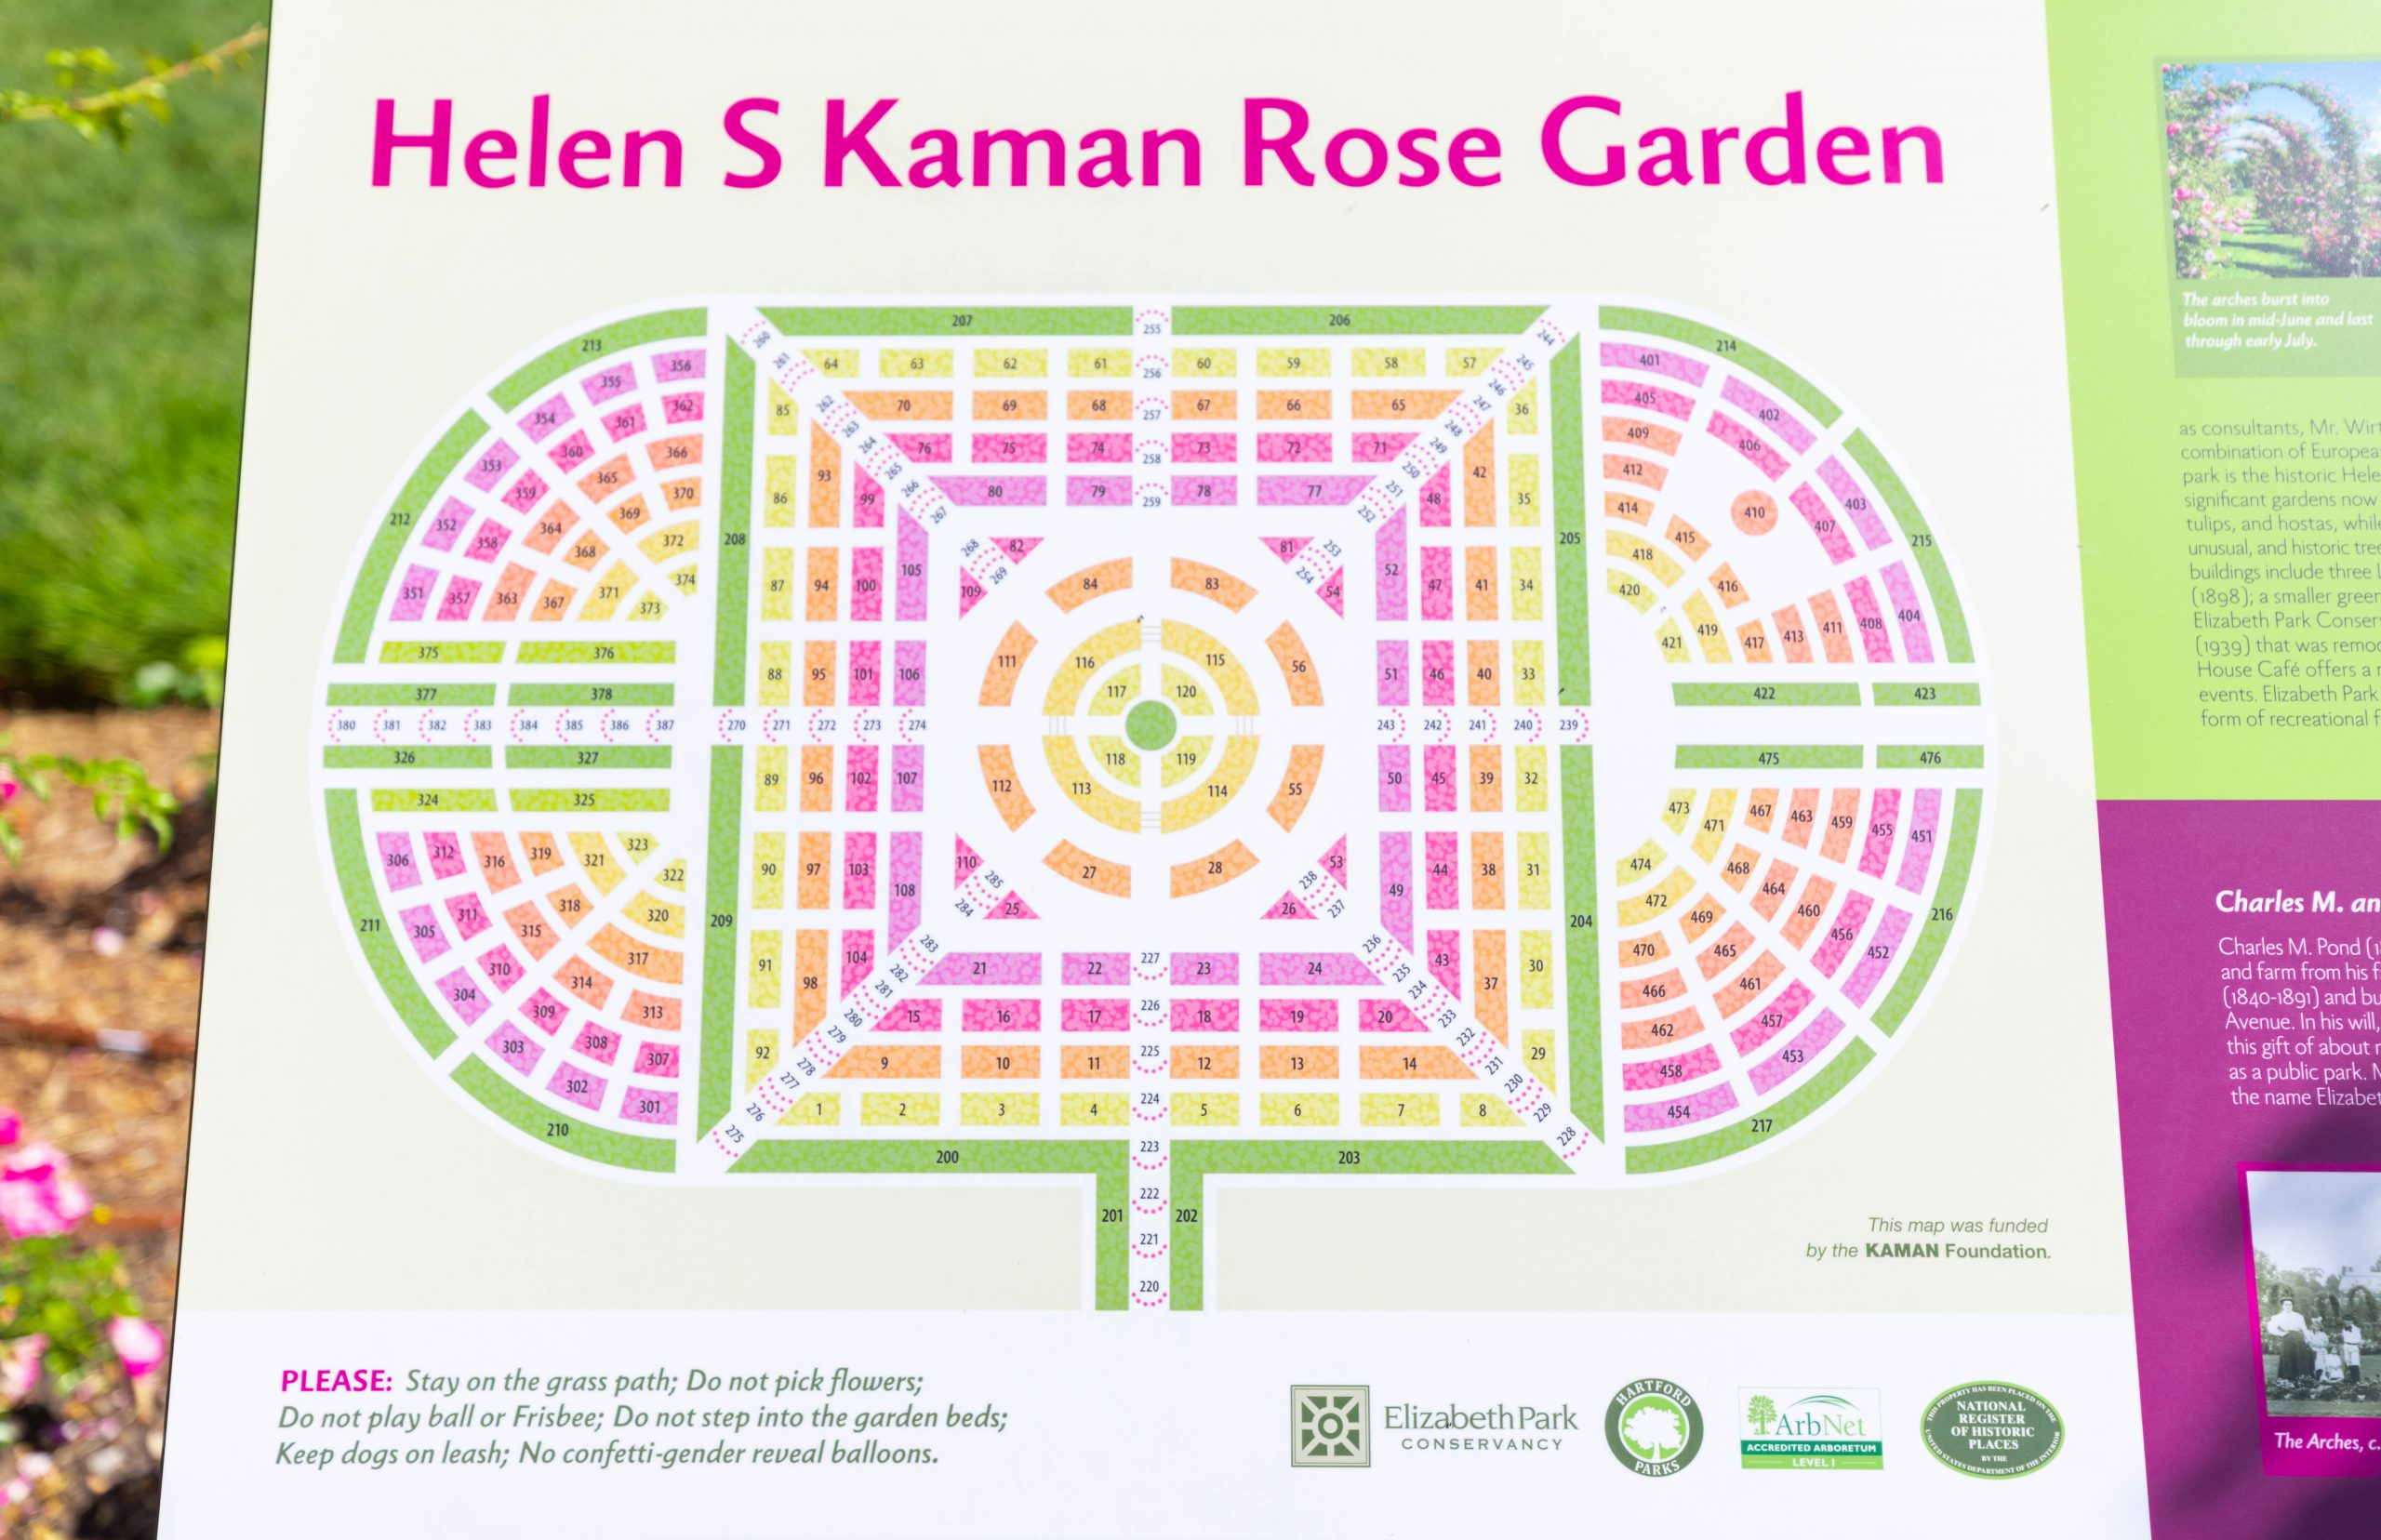 Aerial View of The Helen S Kaman Rose Garden within Elizabeth Park in Hartford, Connecticut Photographed by Annie Fairfax